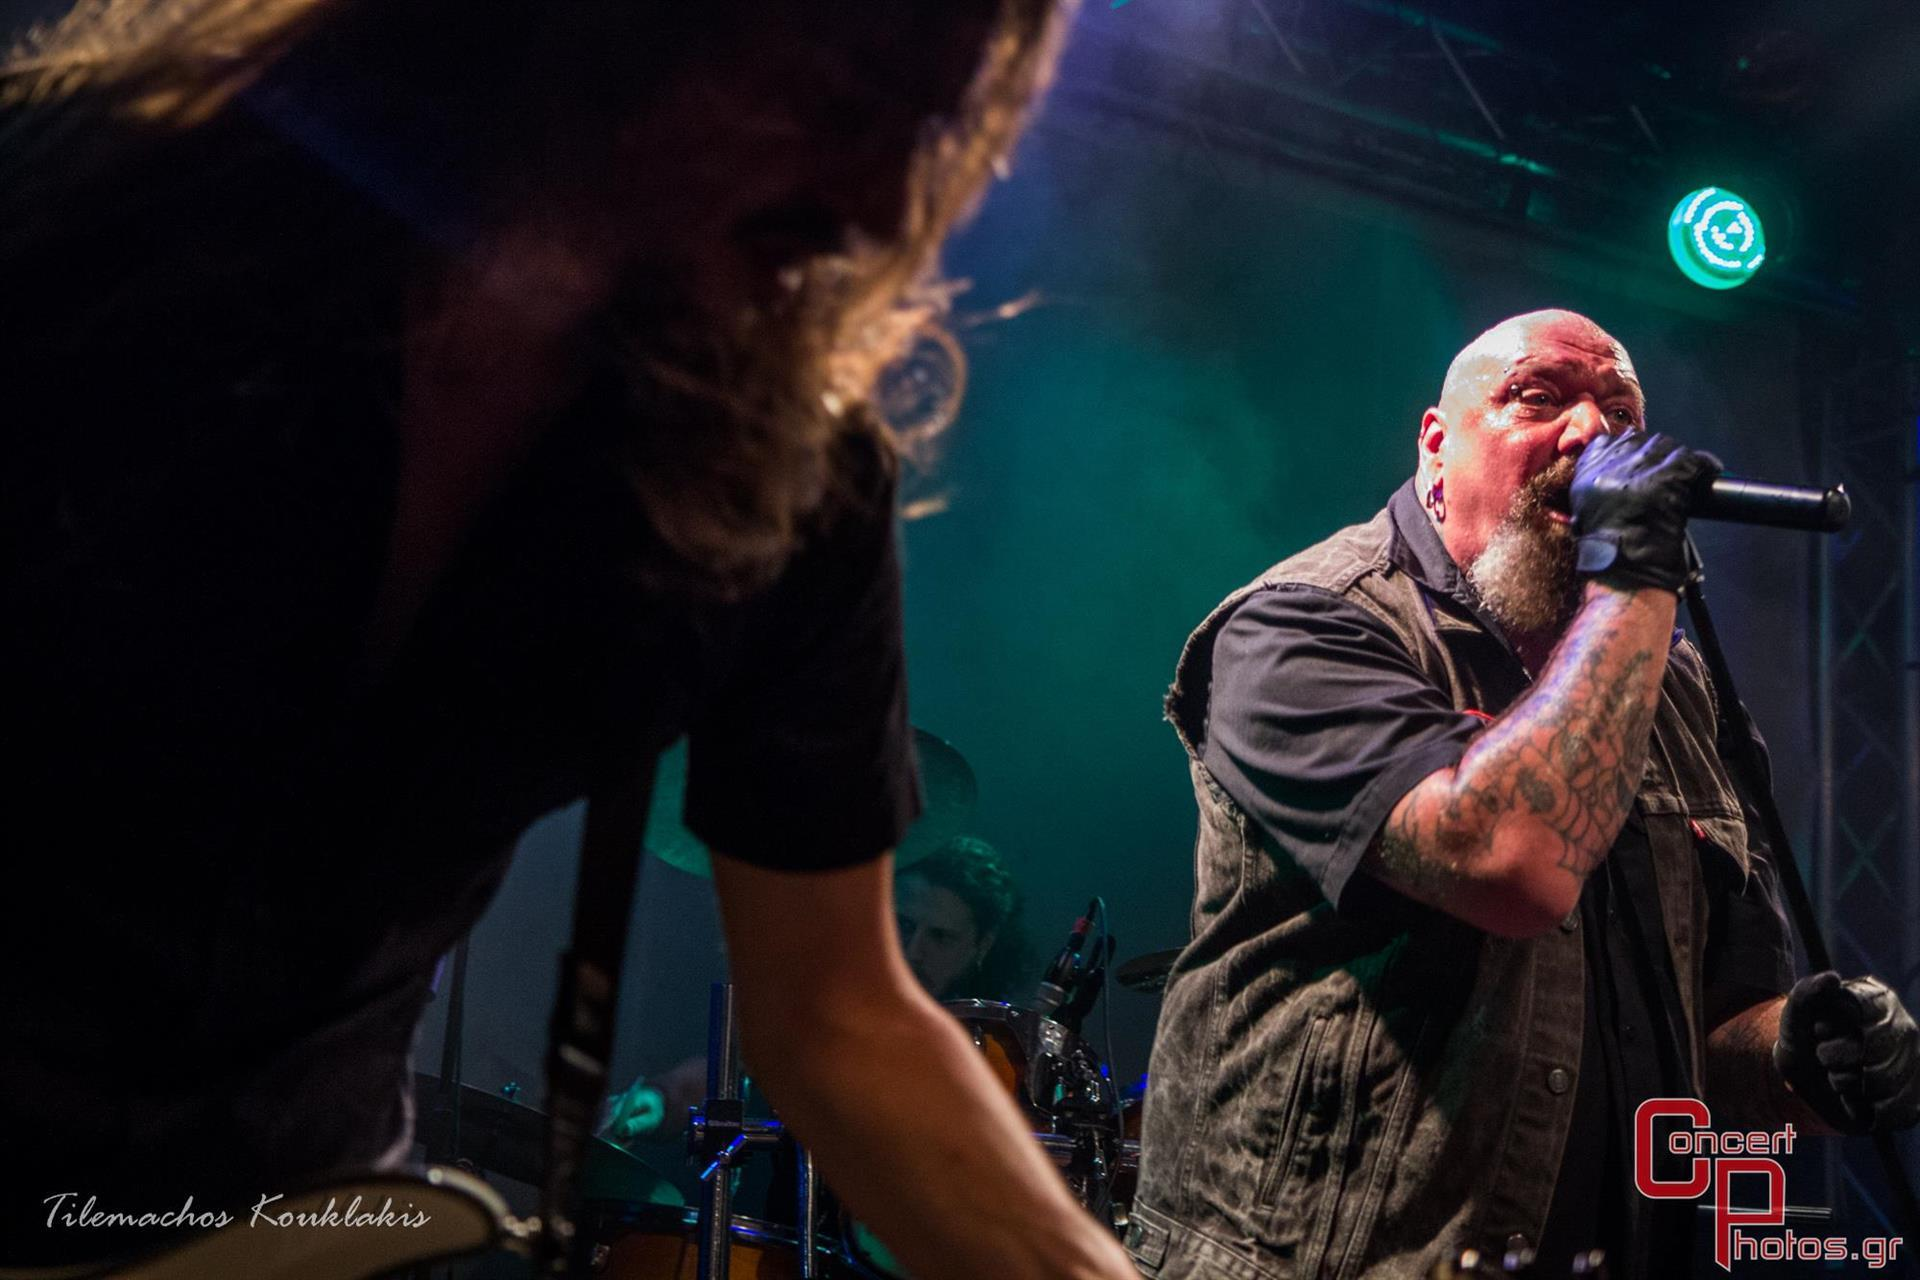 Paul Di Anno -Paul Di Anno  photographer:  - IMG_9327